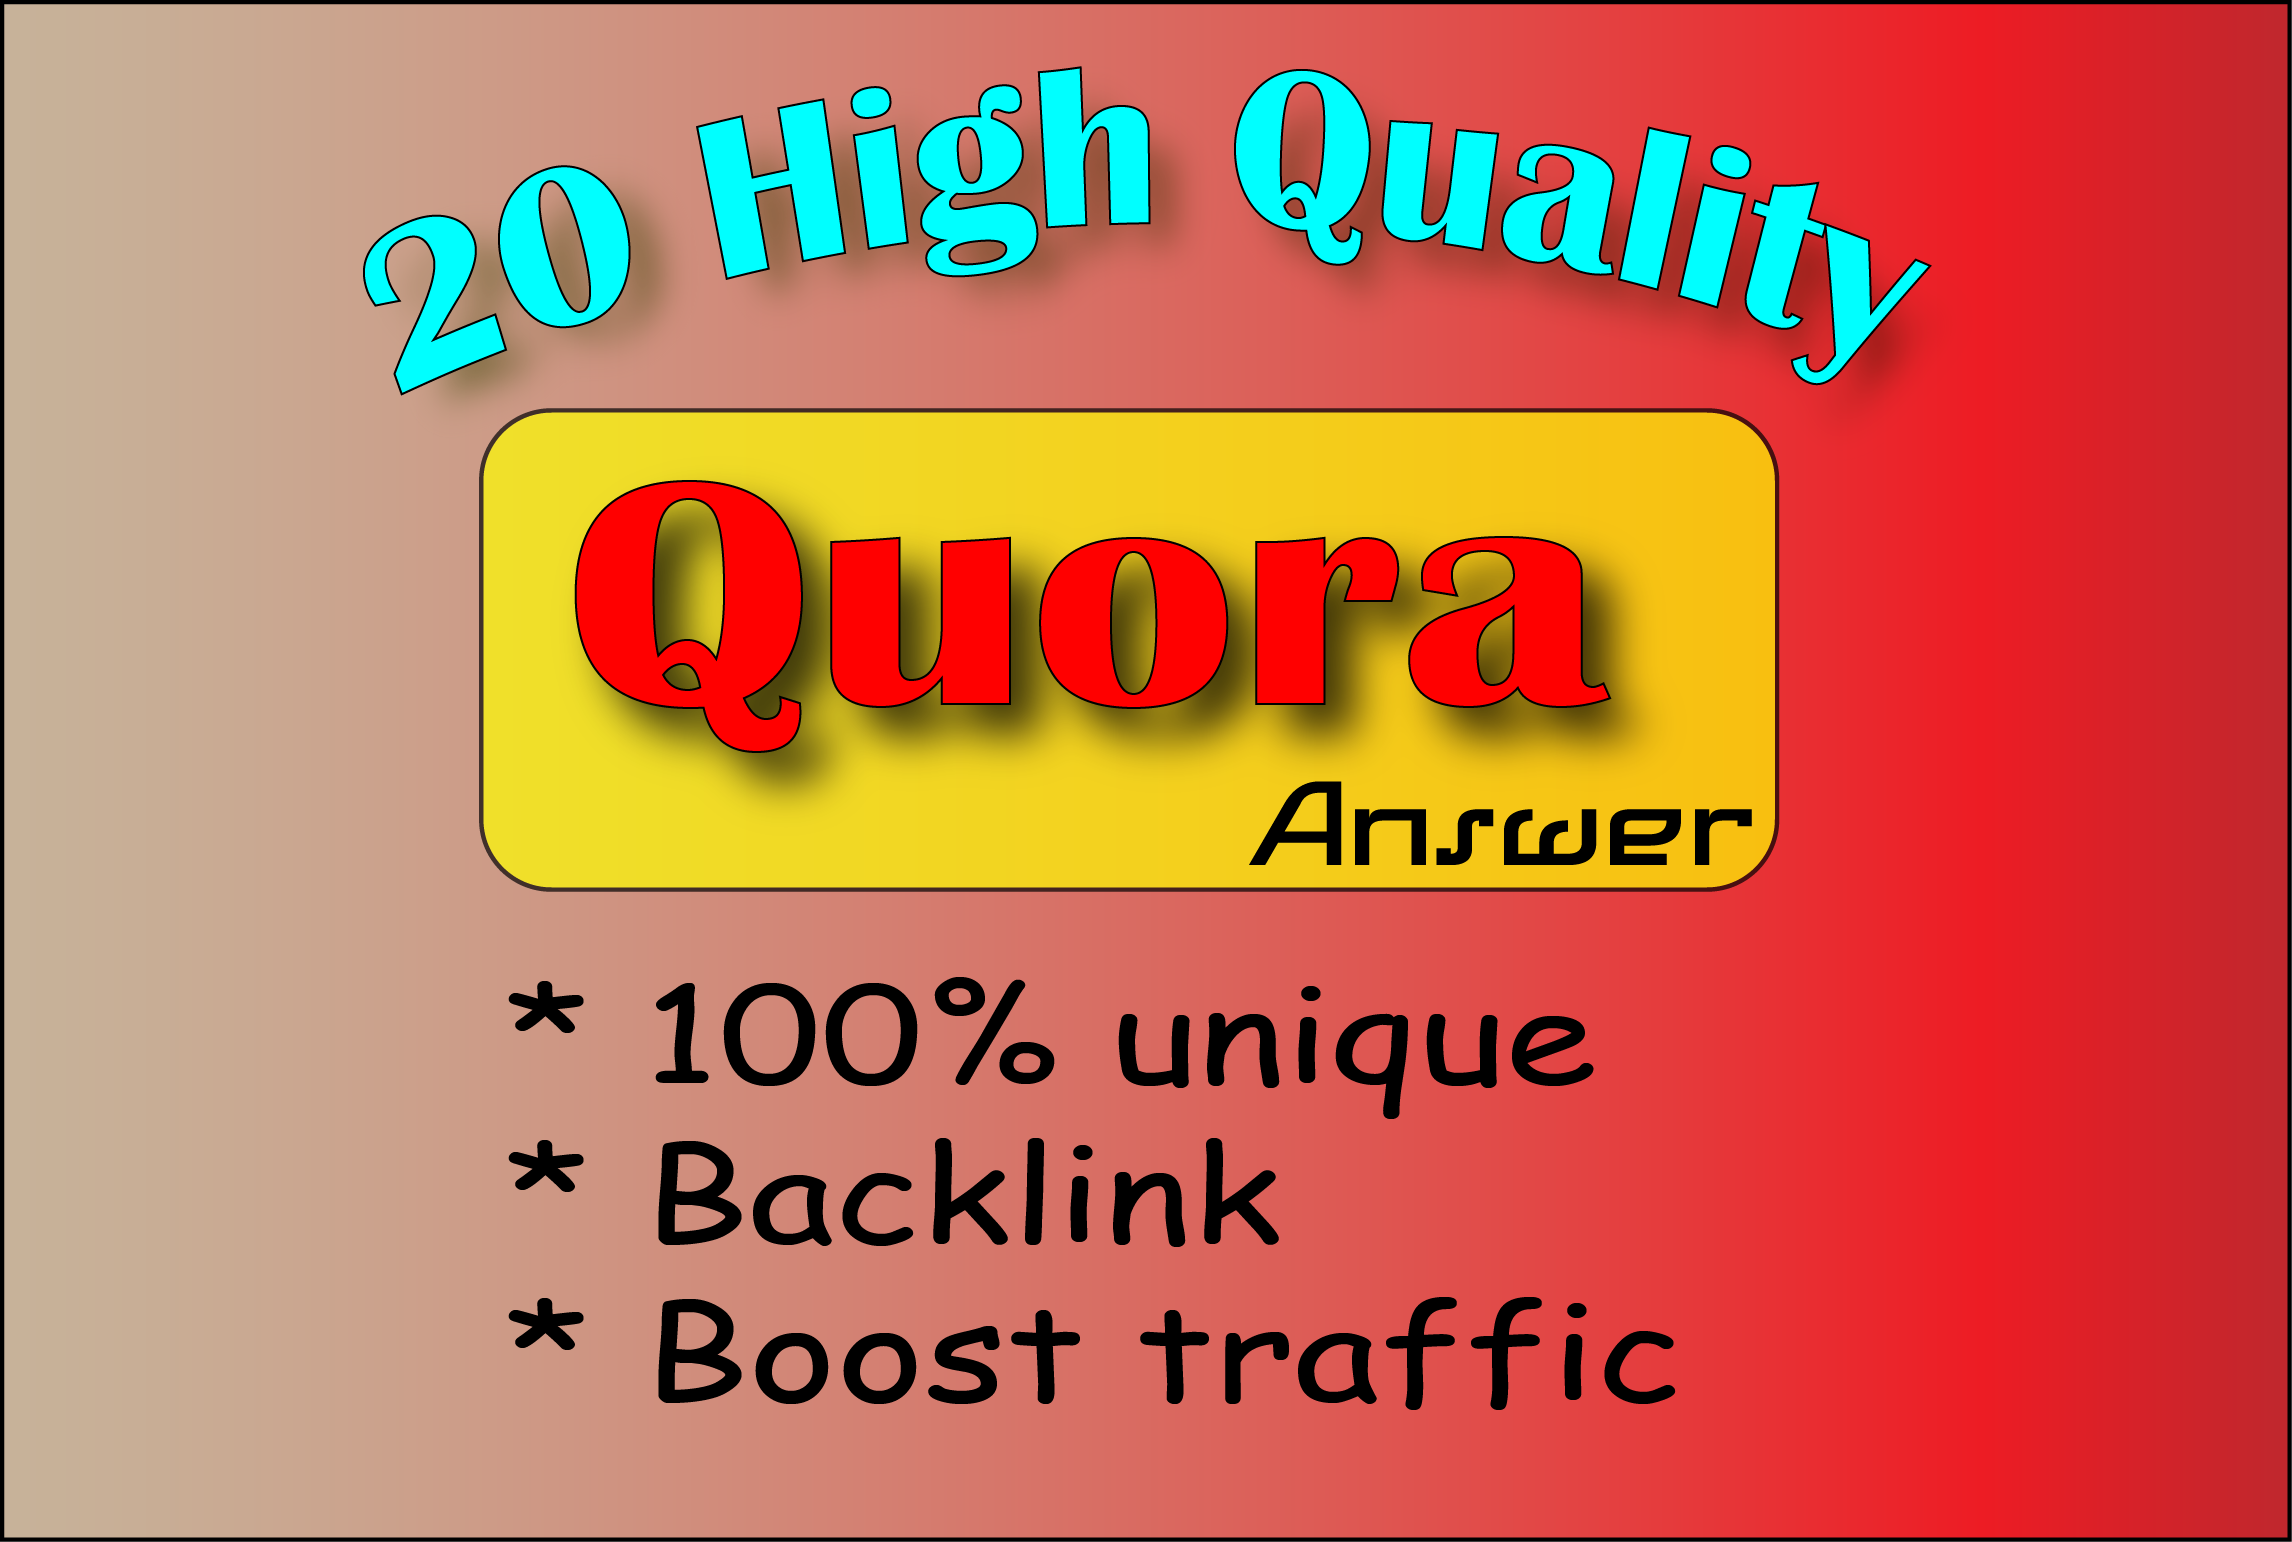 I provide 25 High Quality Quora Backlinks